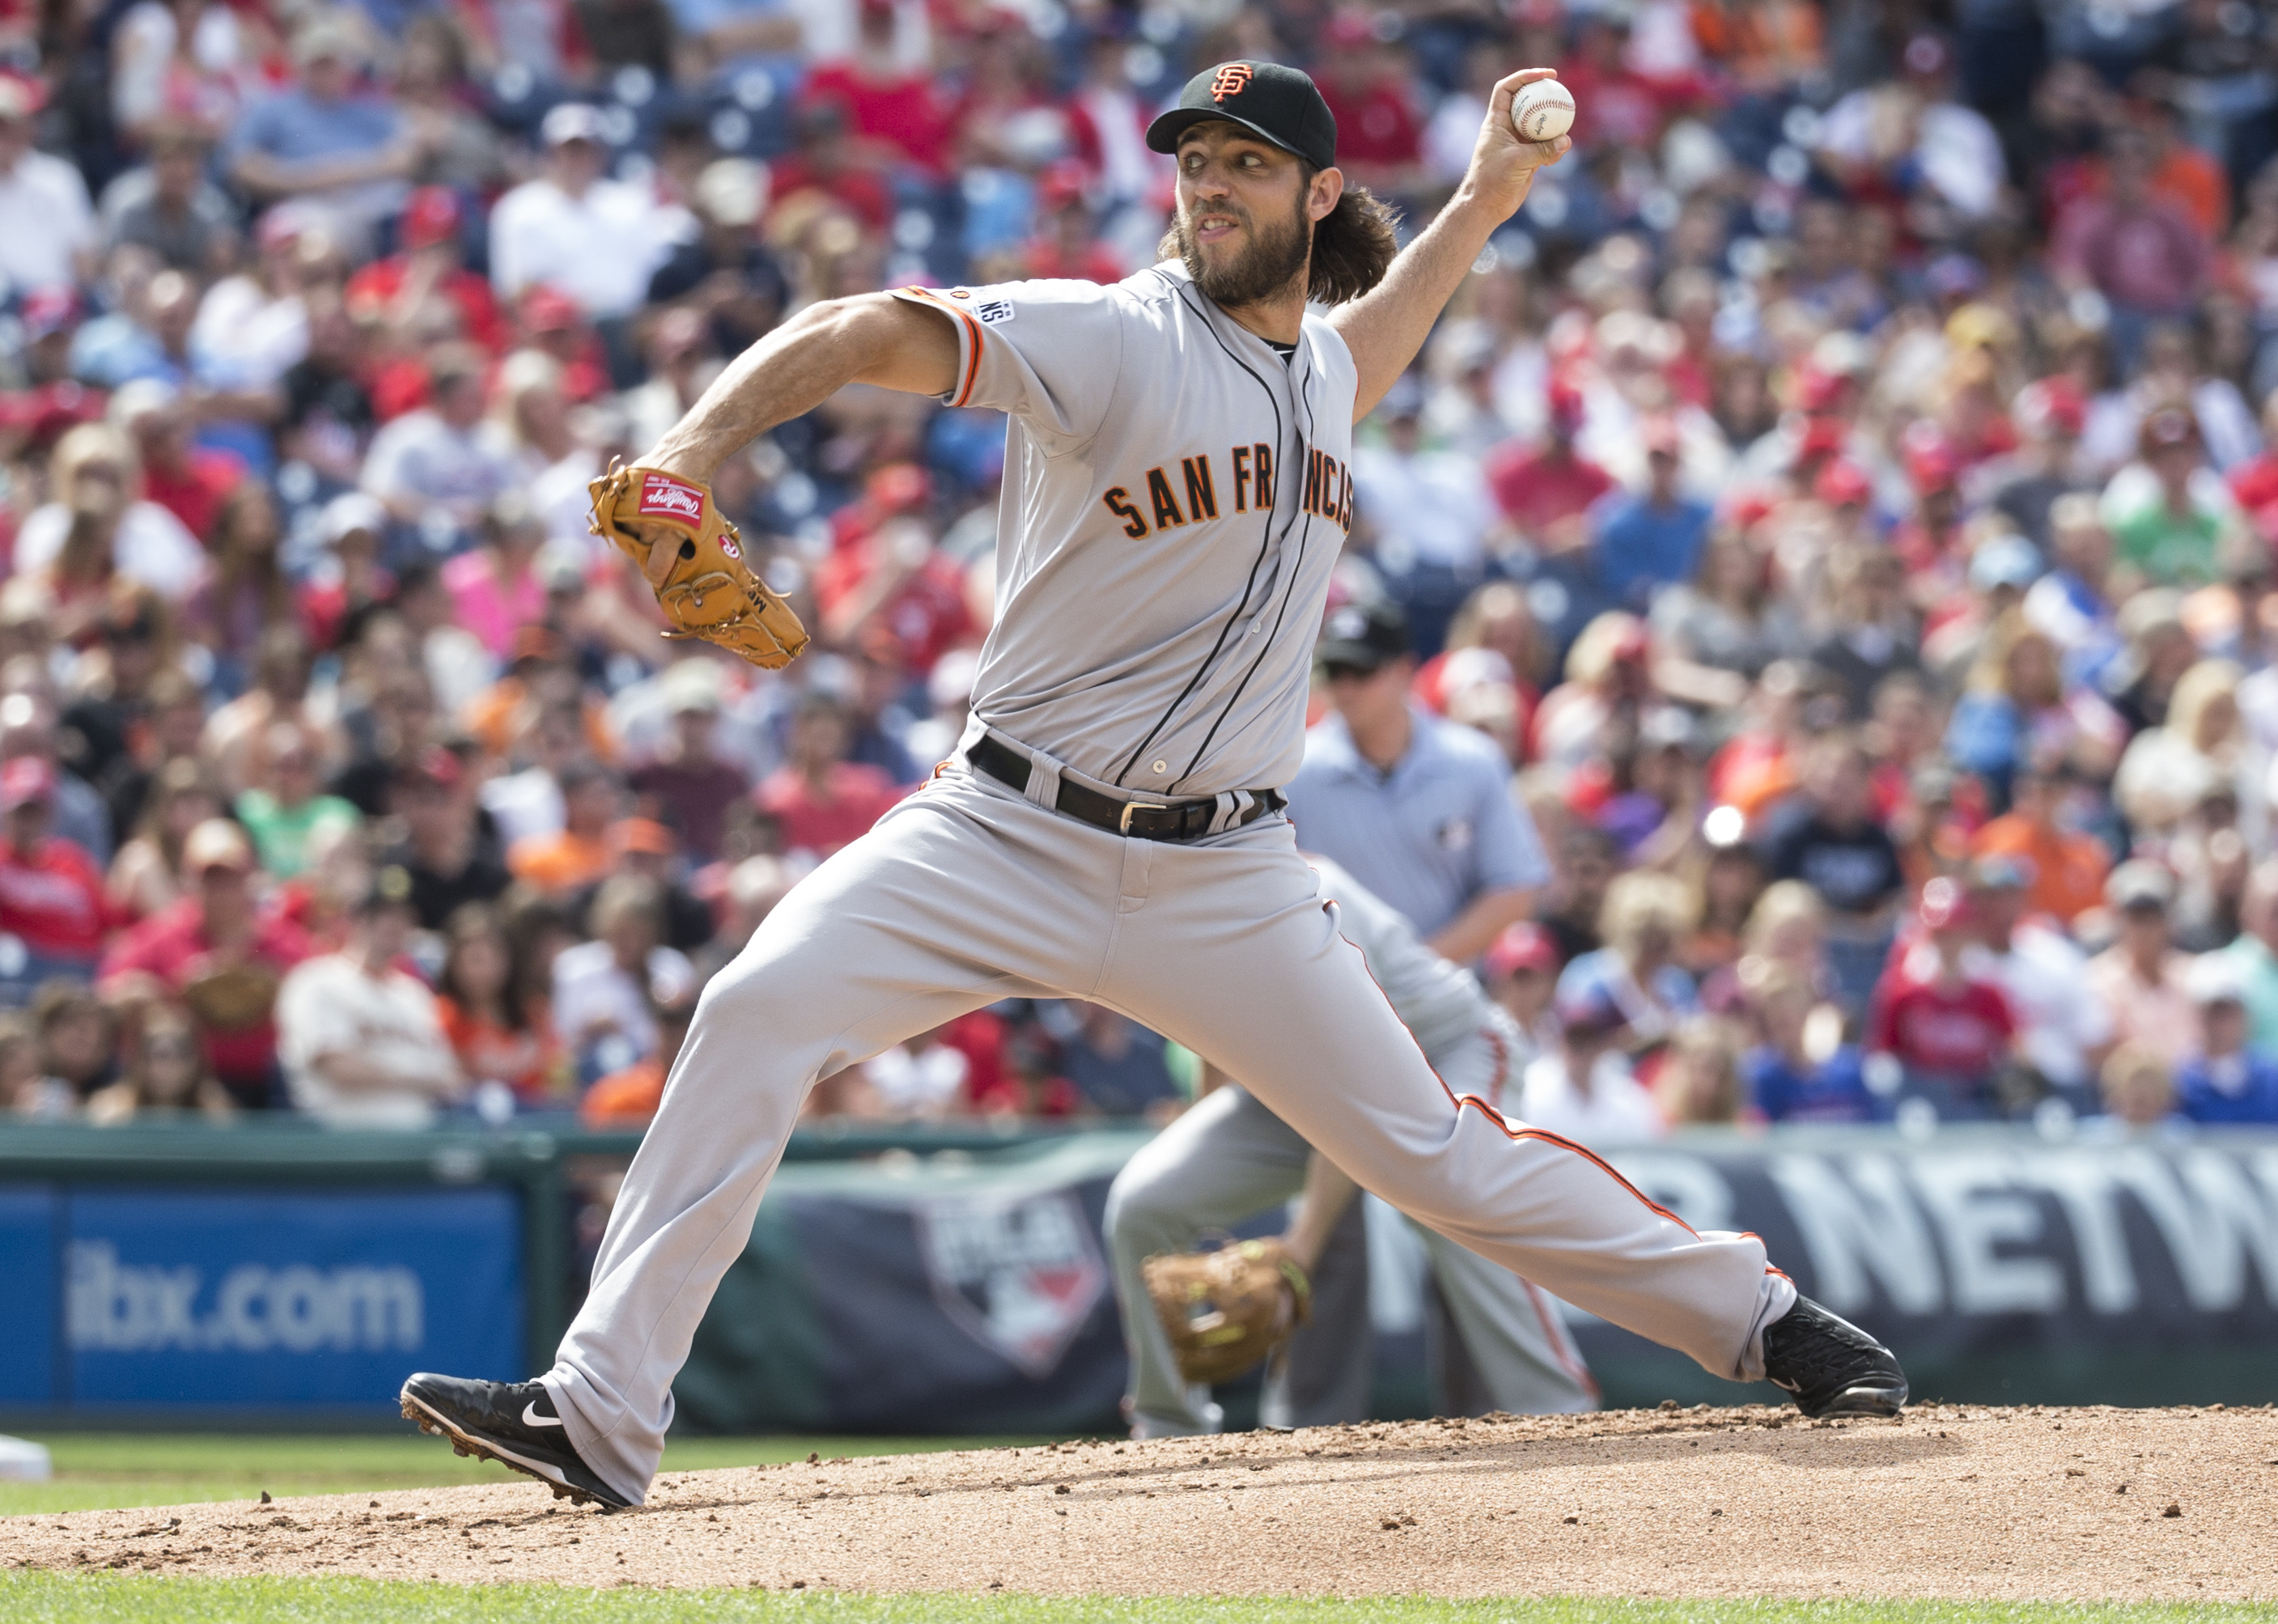 San Francisco Giants starting pitcher Madison Bumgarner throws a pitch during the first inning of a baseball game against the Philadelphia Phillies, Saturday, June 6, 2015, in Philadelphia. (AP Photo/Chris Szagola)